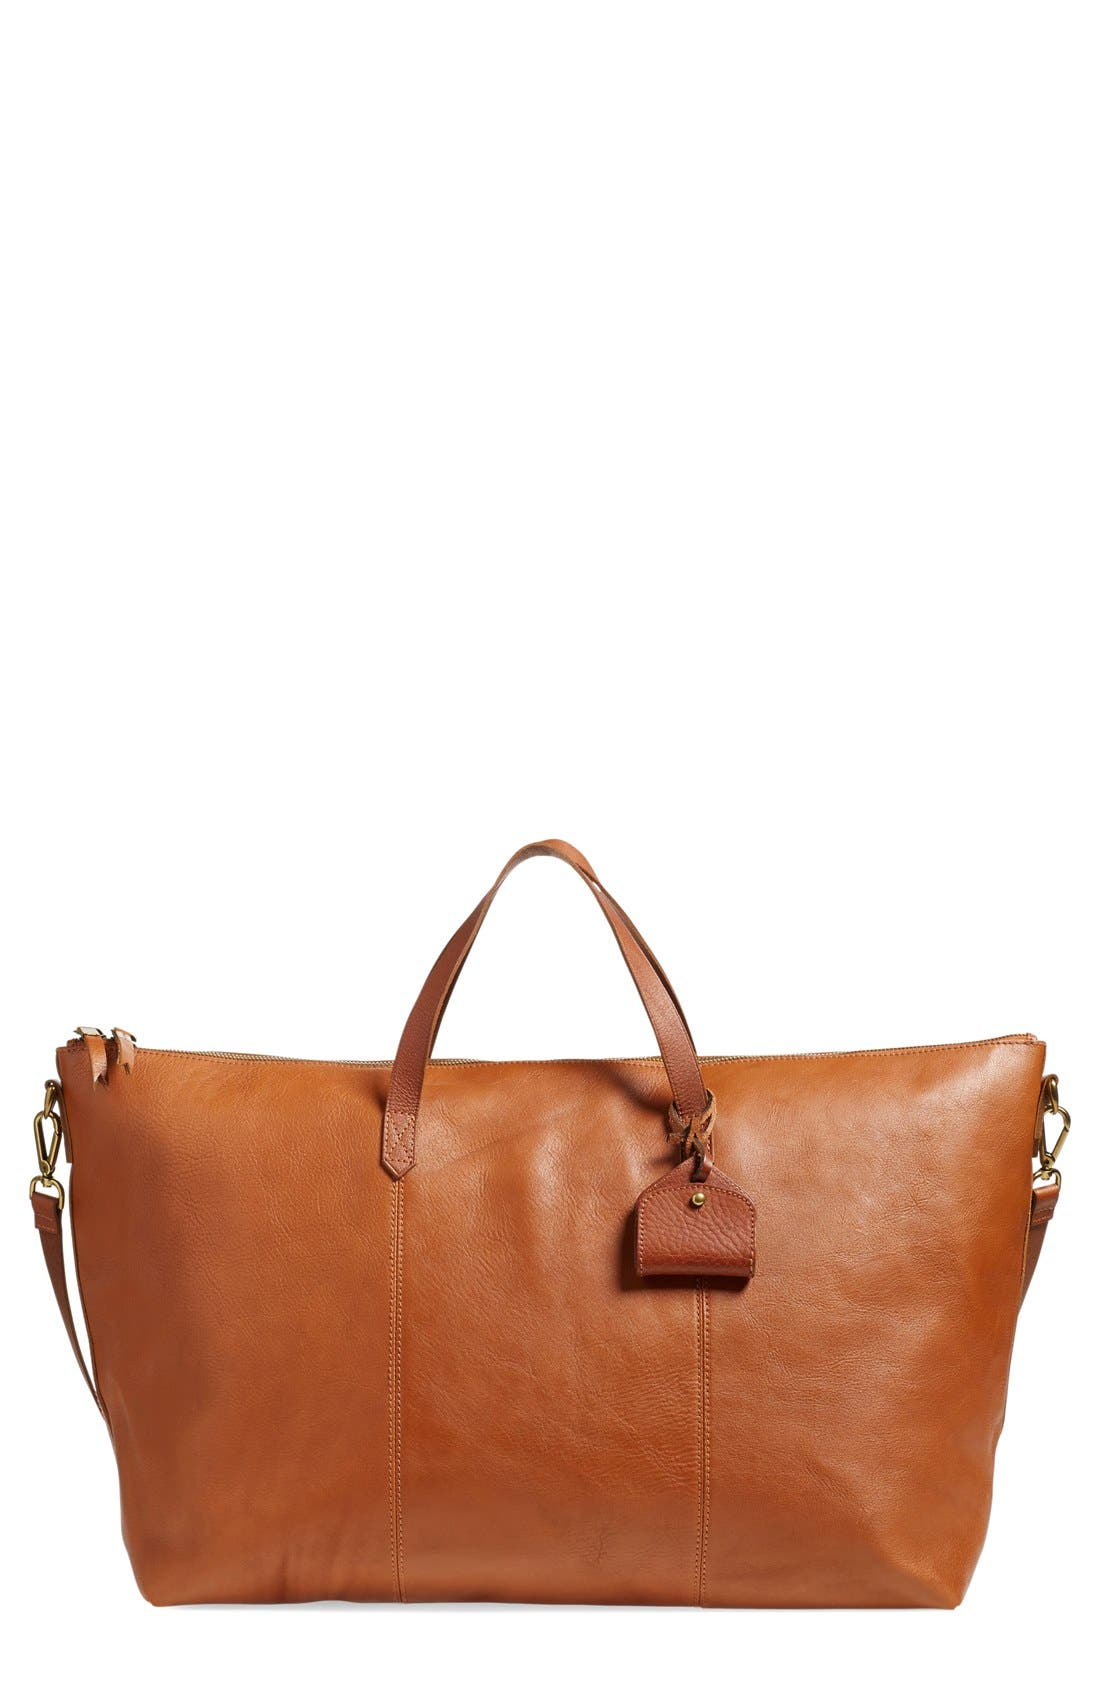 Madewell 'Transport' Weekend Bag